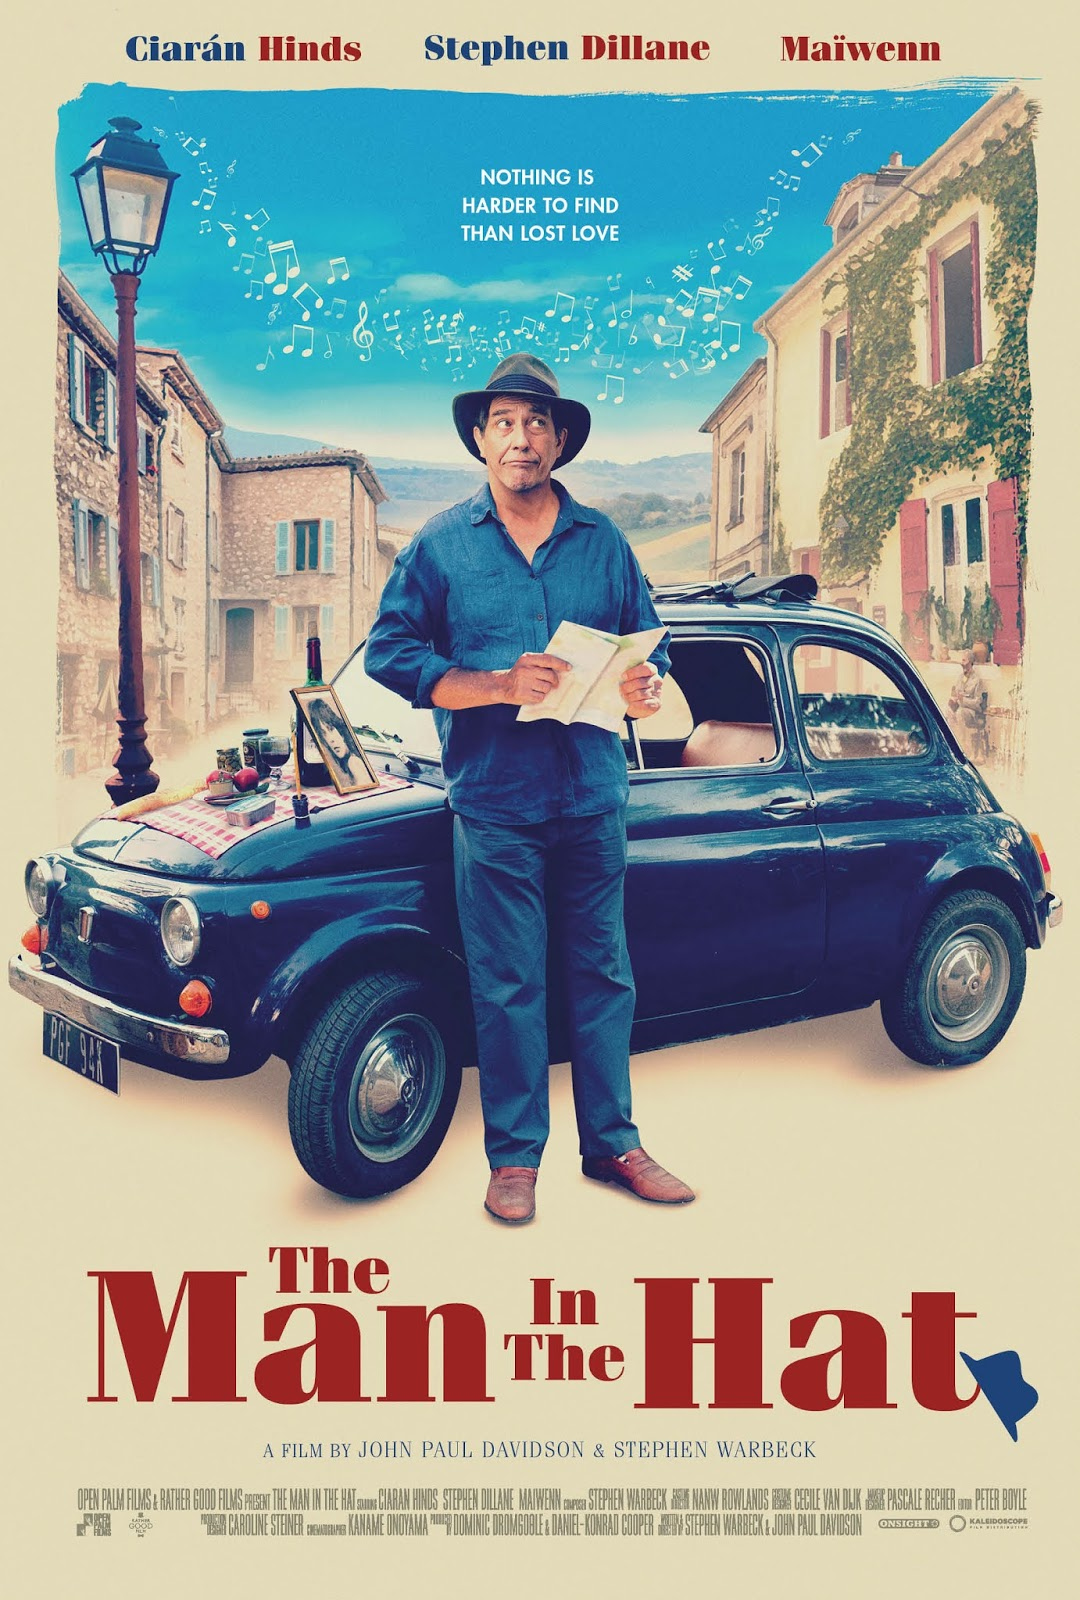 Been To The Movies: The Man In The Hat - New Poster and Trailer - Starring  Ciarán Hinds